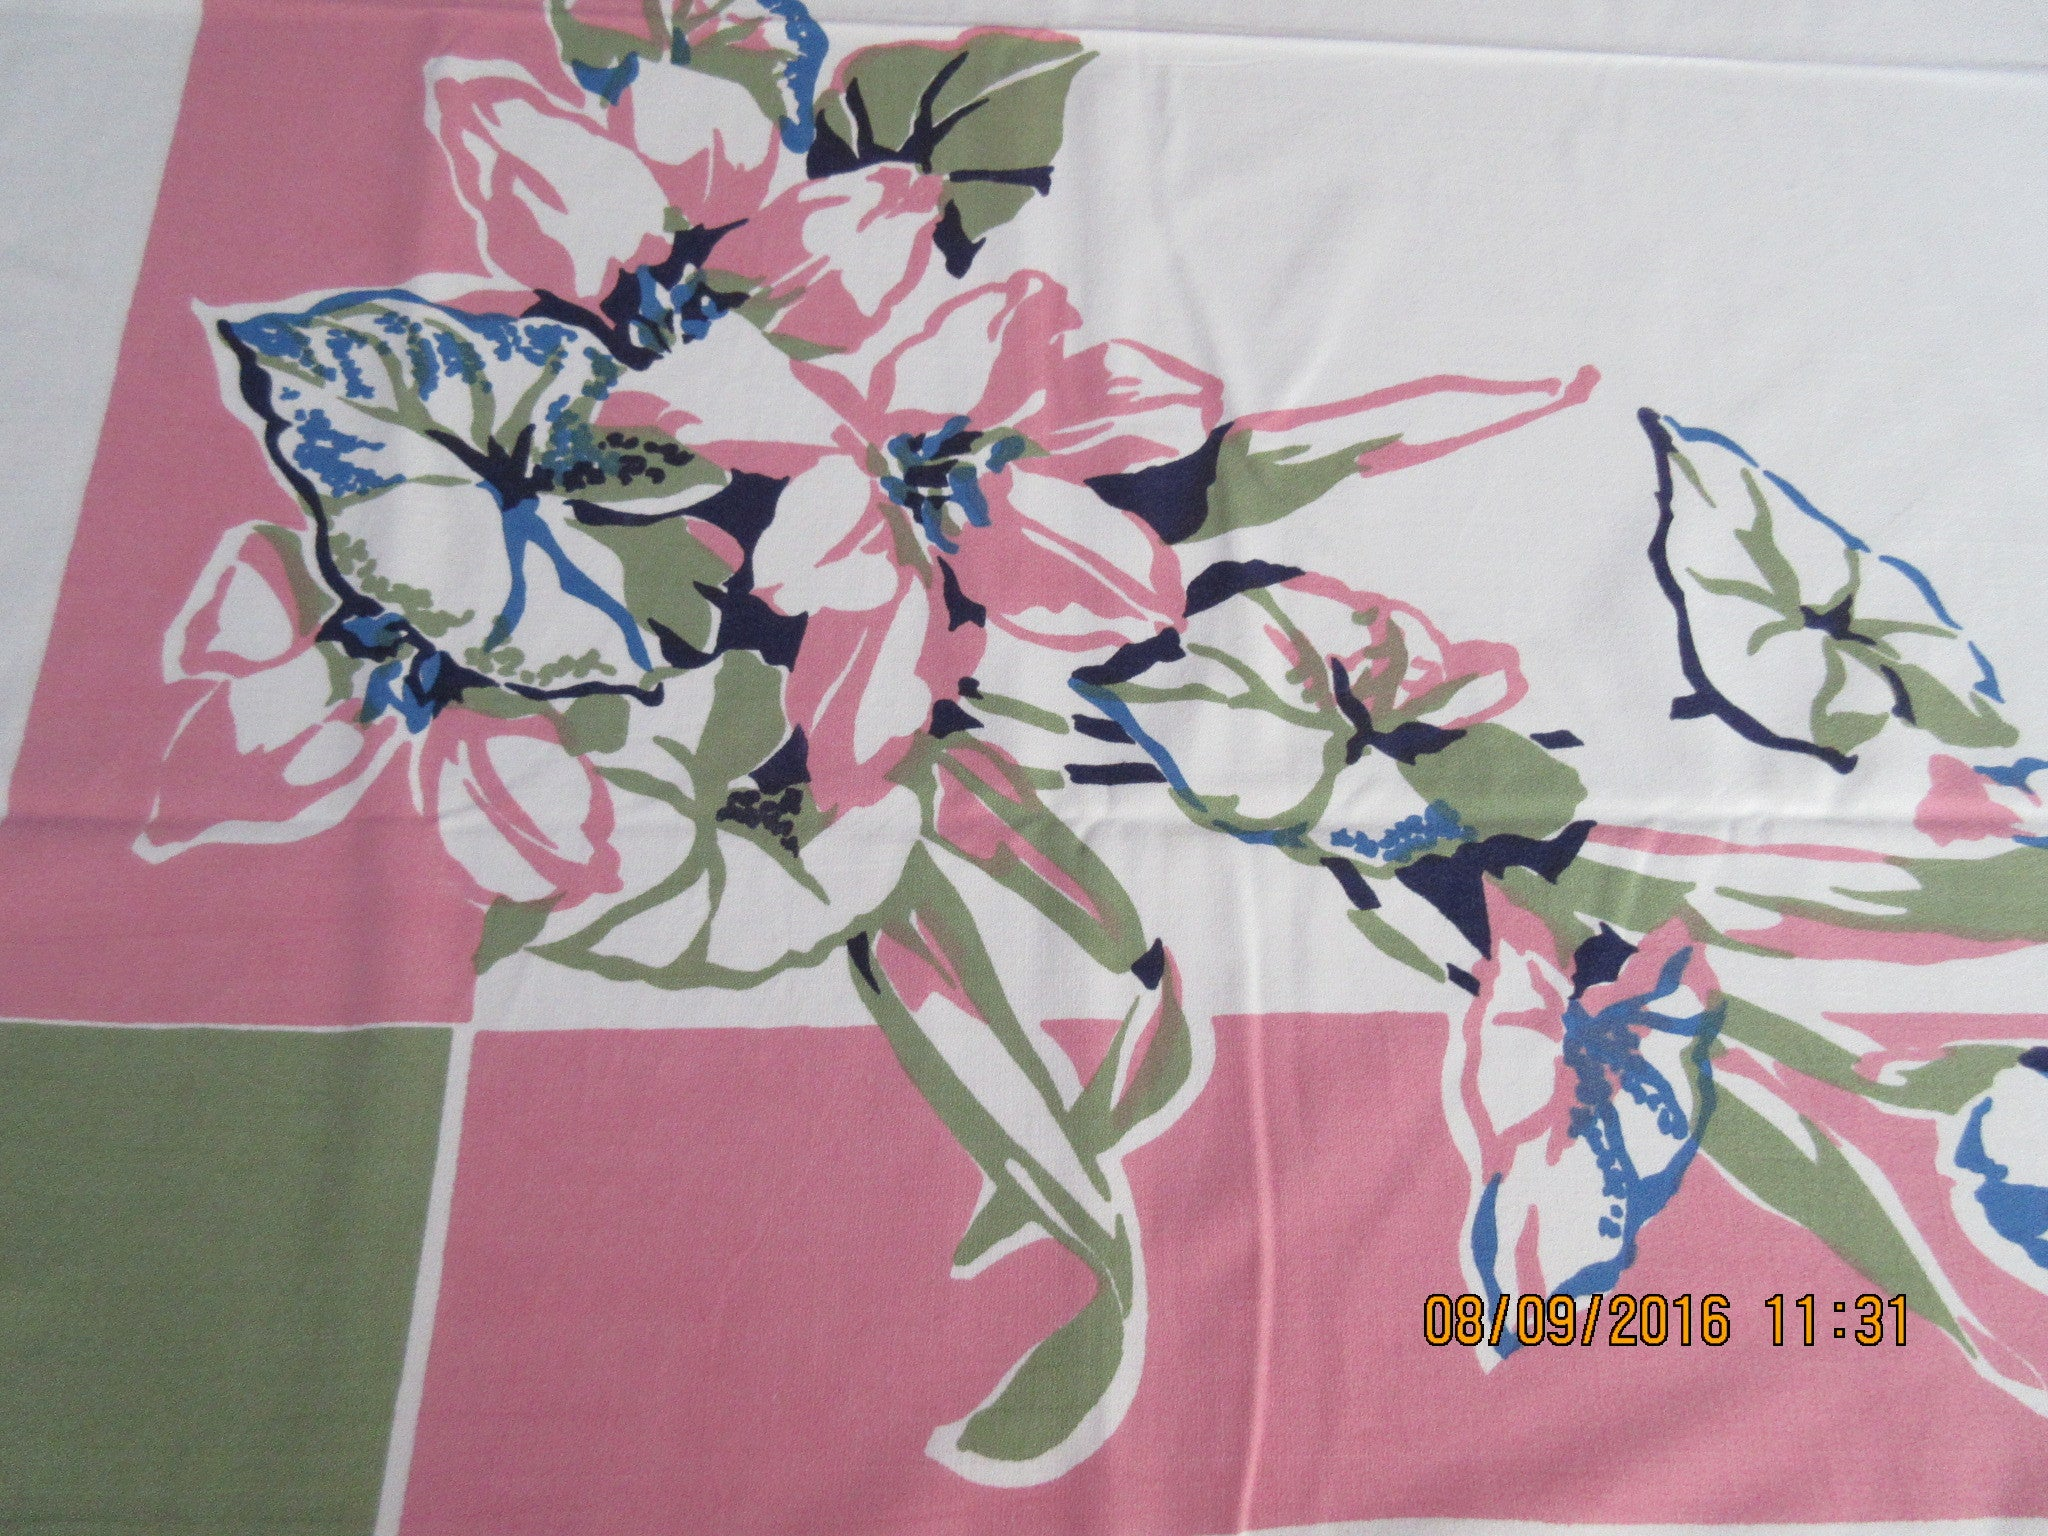 Graphical Lilies Begonias on Pink Olive Green Floral Vintage Printed Tablecloth (66 X 50)